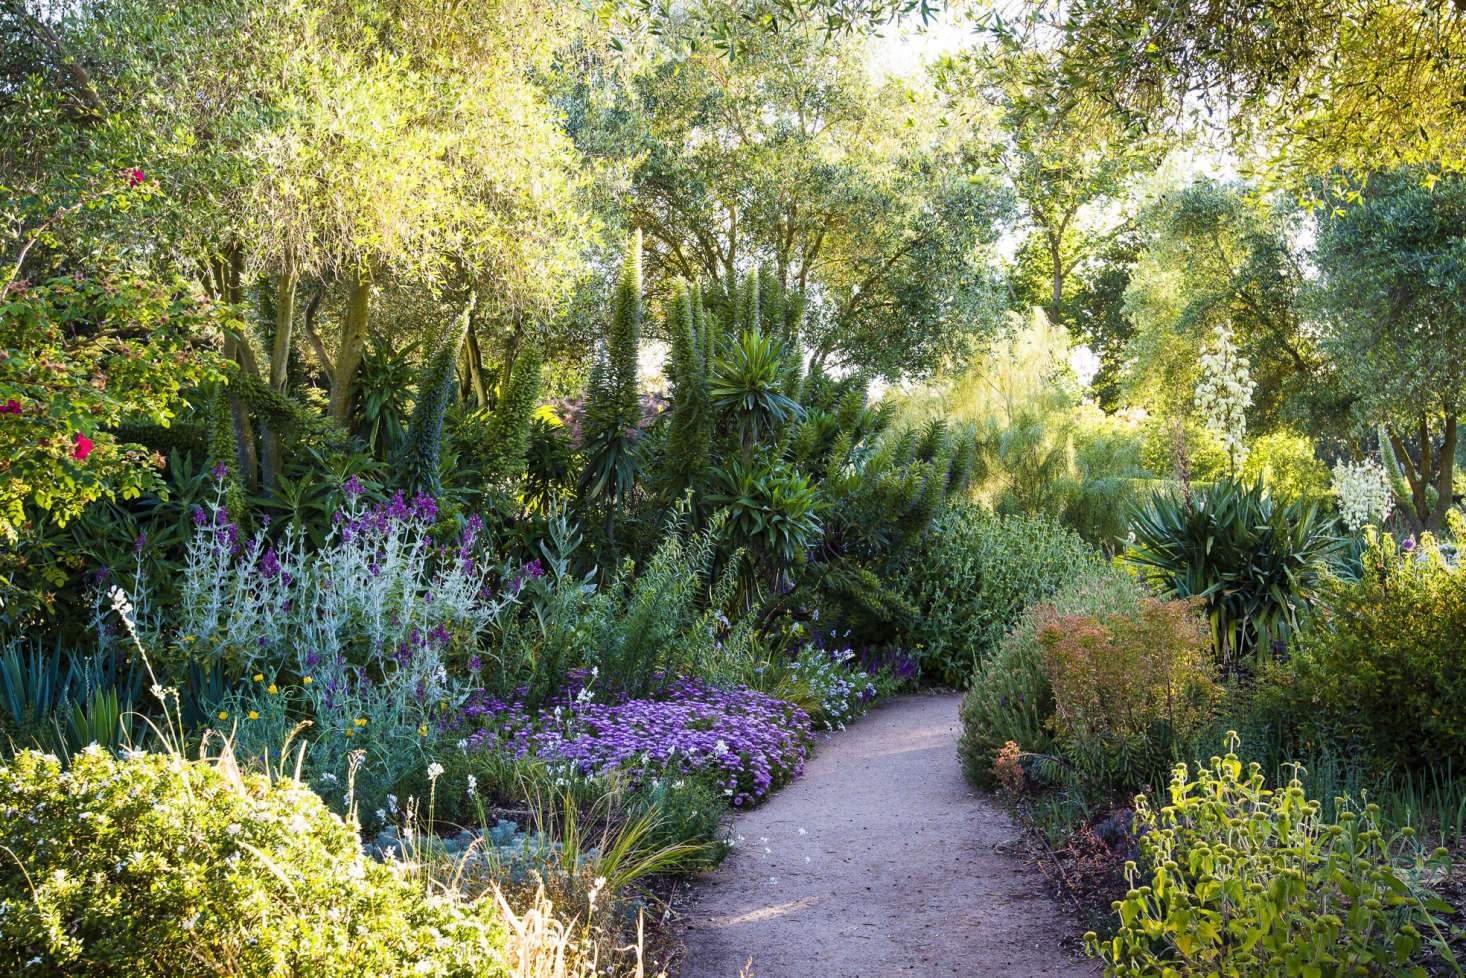 A path bisects the teeming lushness, in a garden with height, volume, and interesting textures.